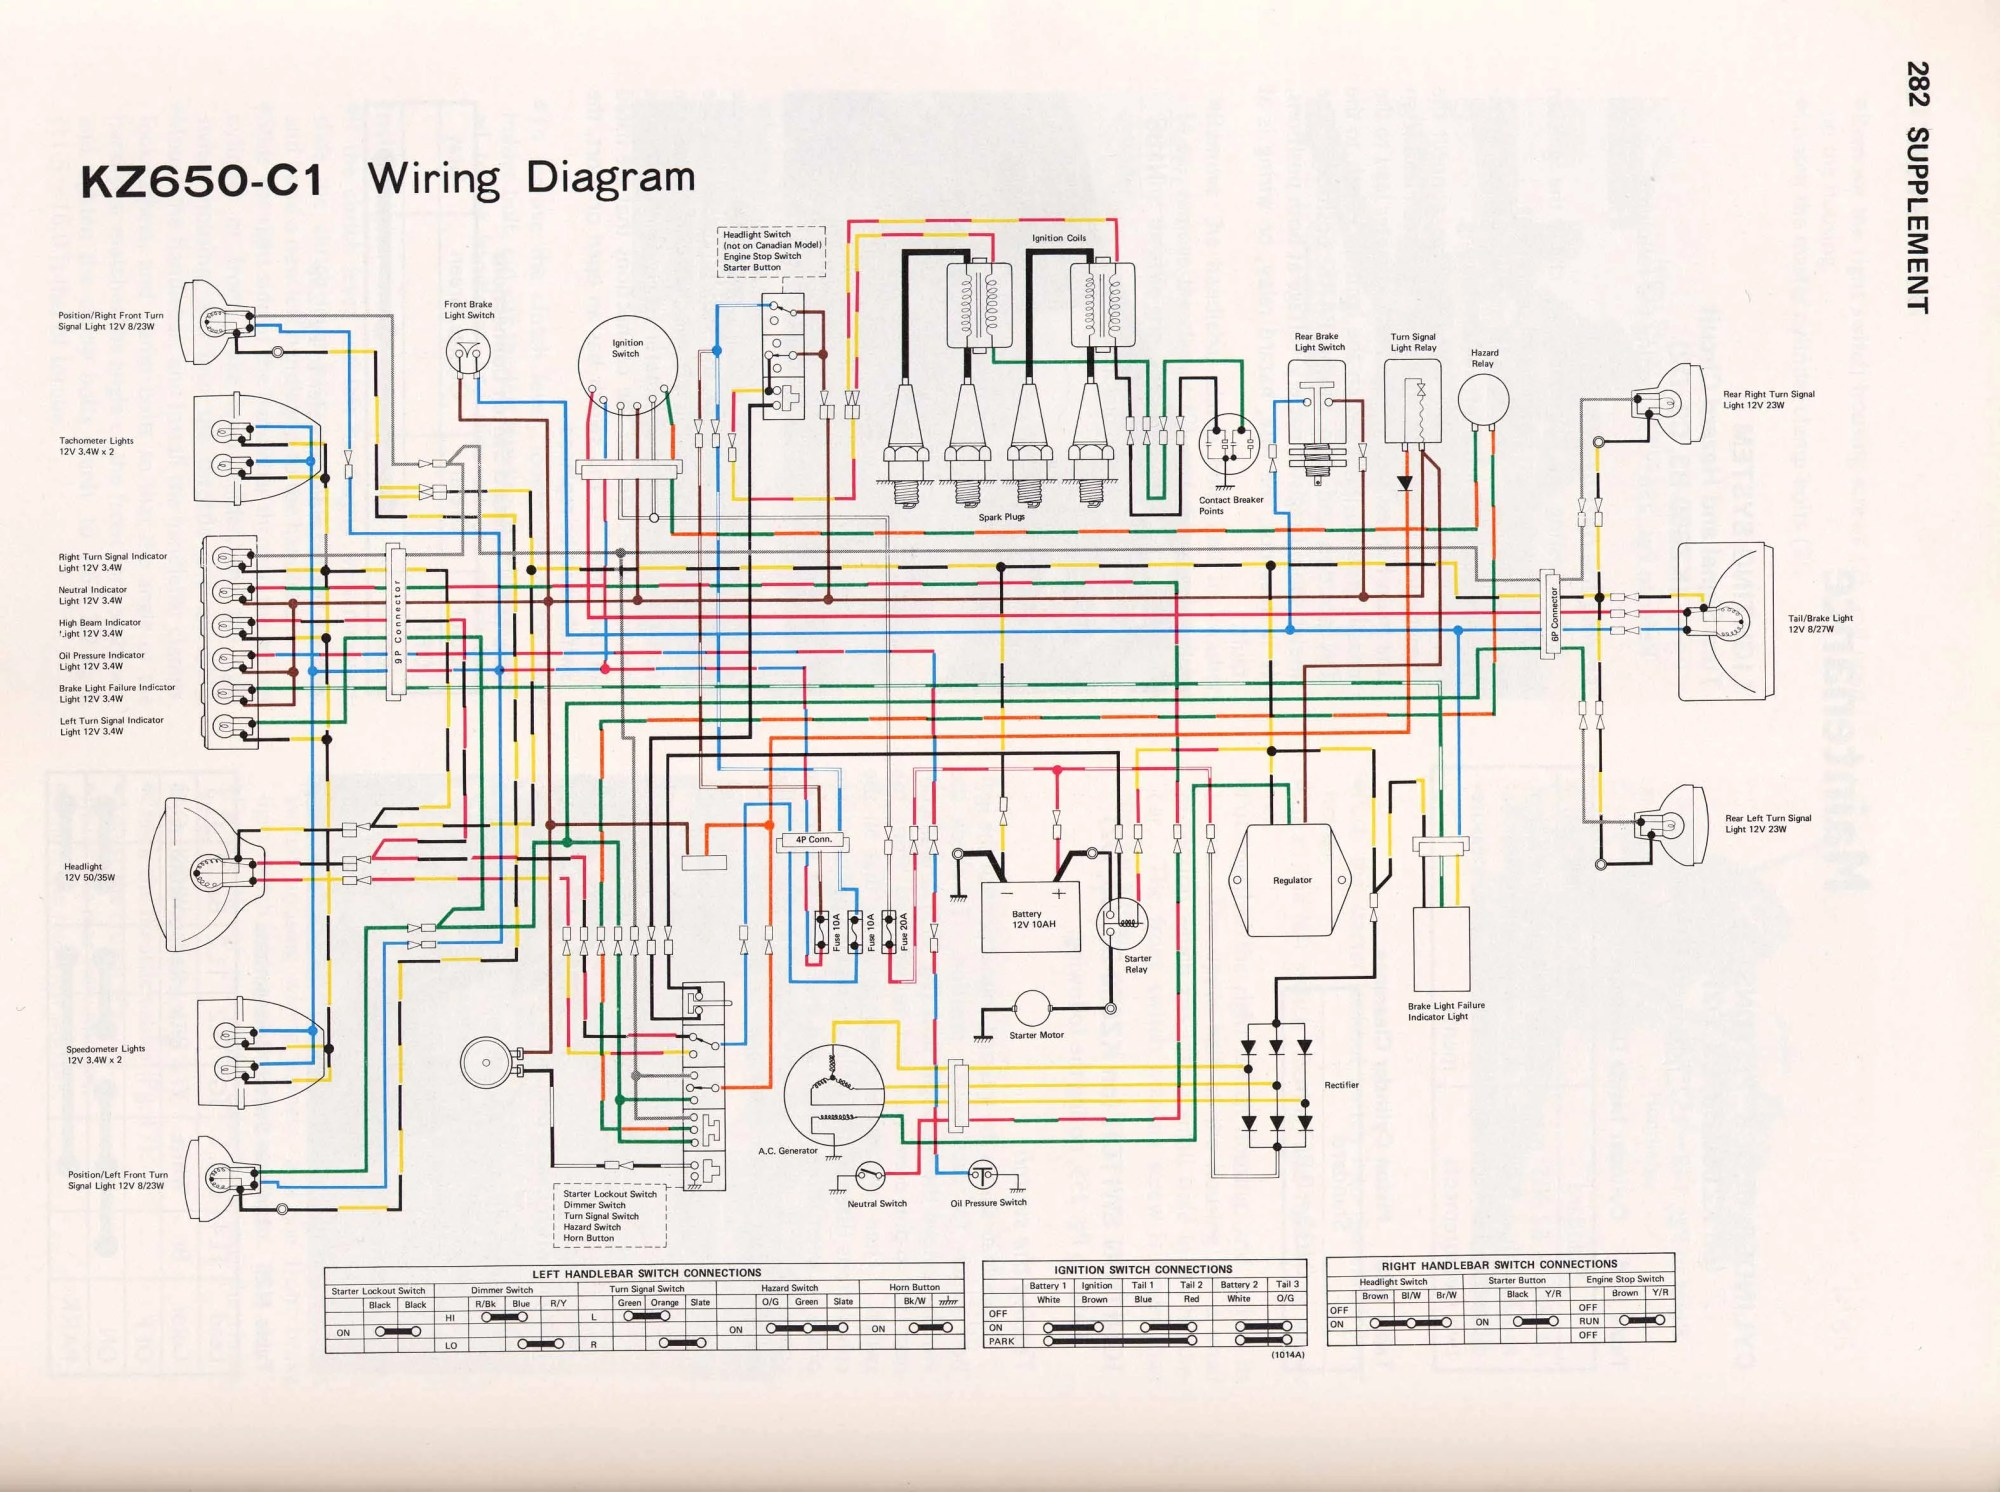 hight resolution of kz650 info wiring diagrams 1982 kawasaki kz440 wiring diagram 1982 kawasaki wiring diagrams